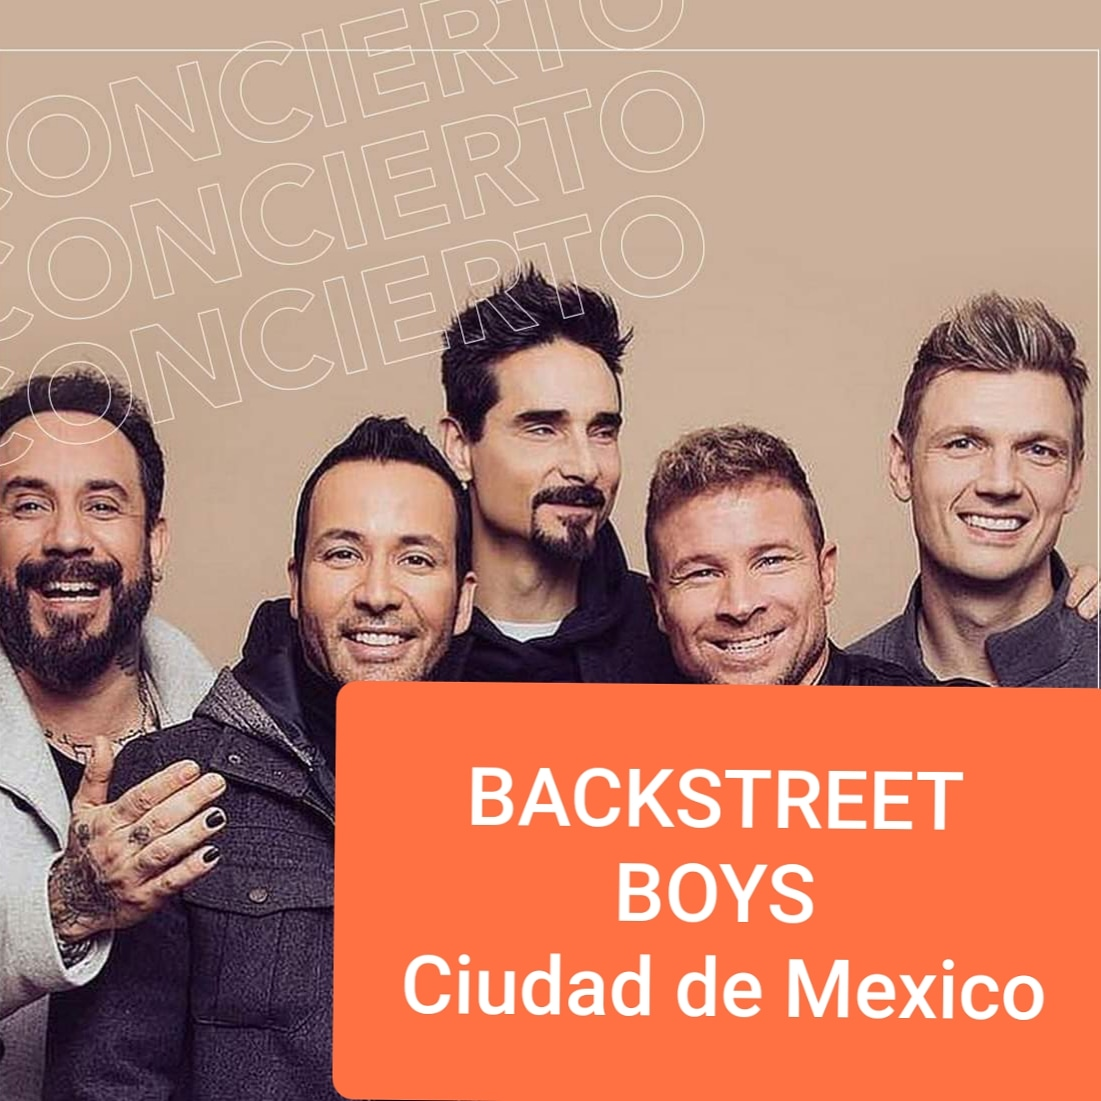 BACKSTREET BOYS En Mexico 20 de Febrero